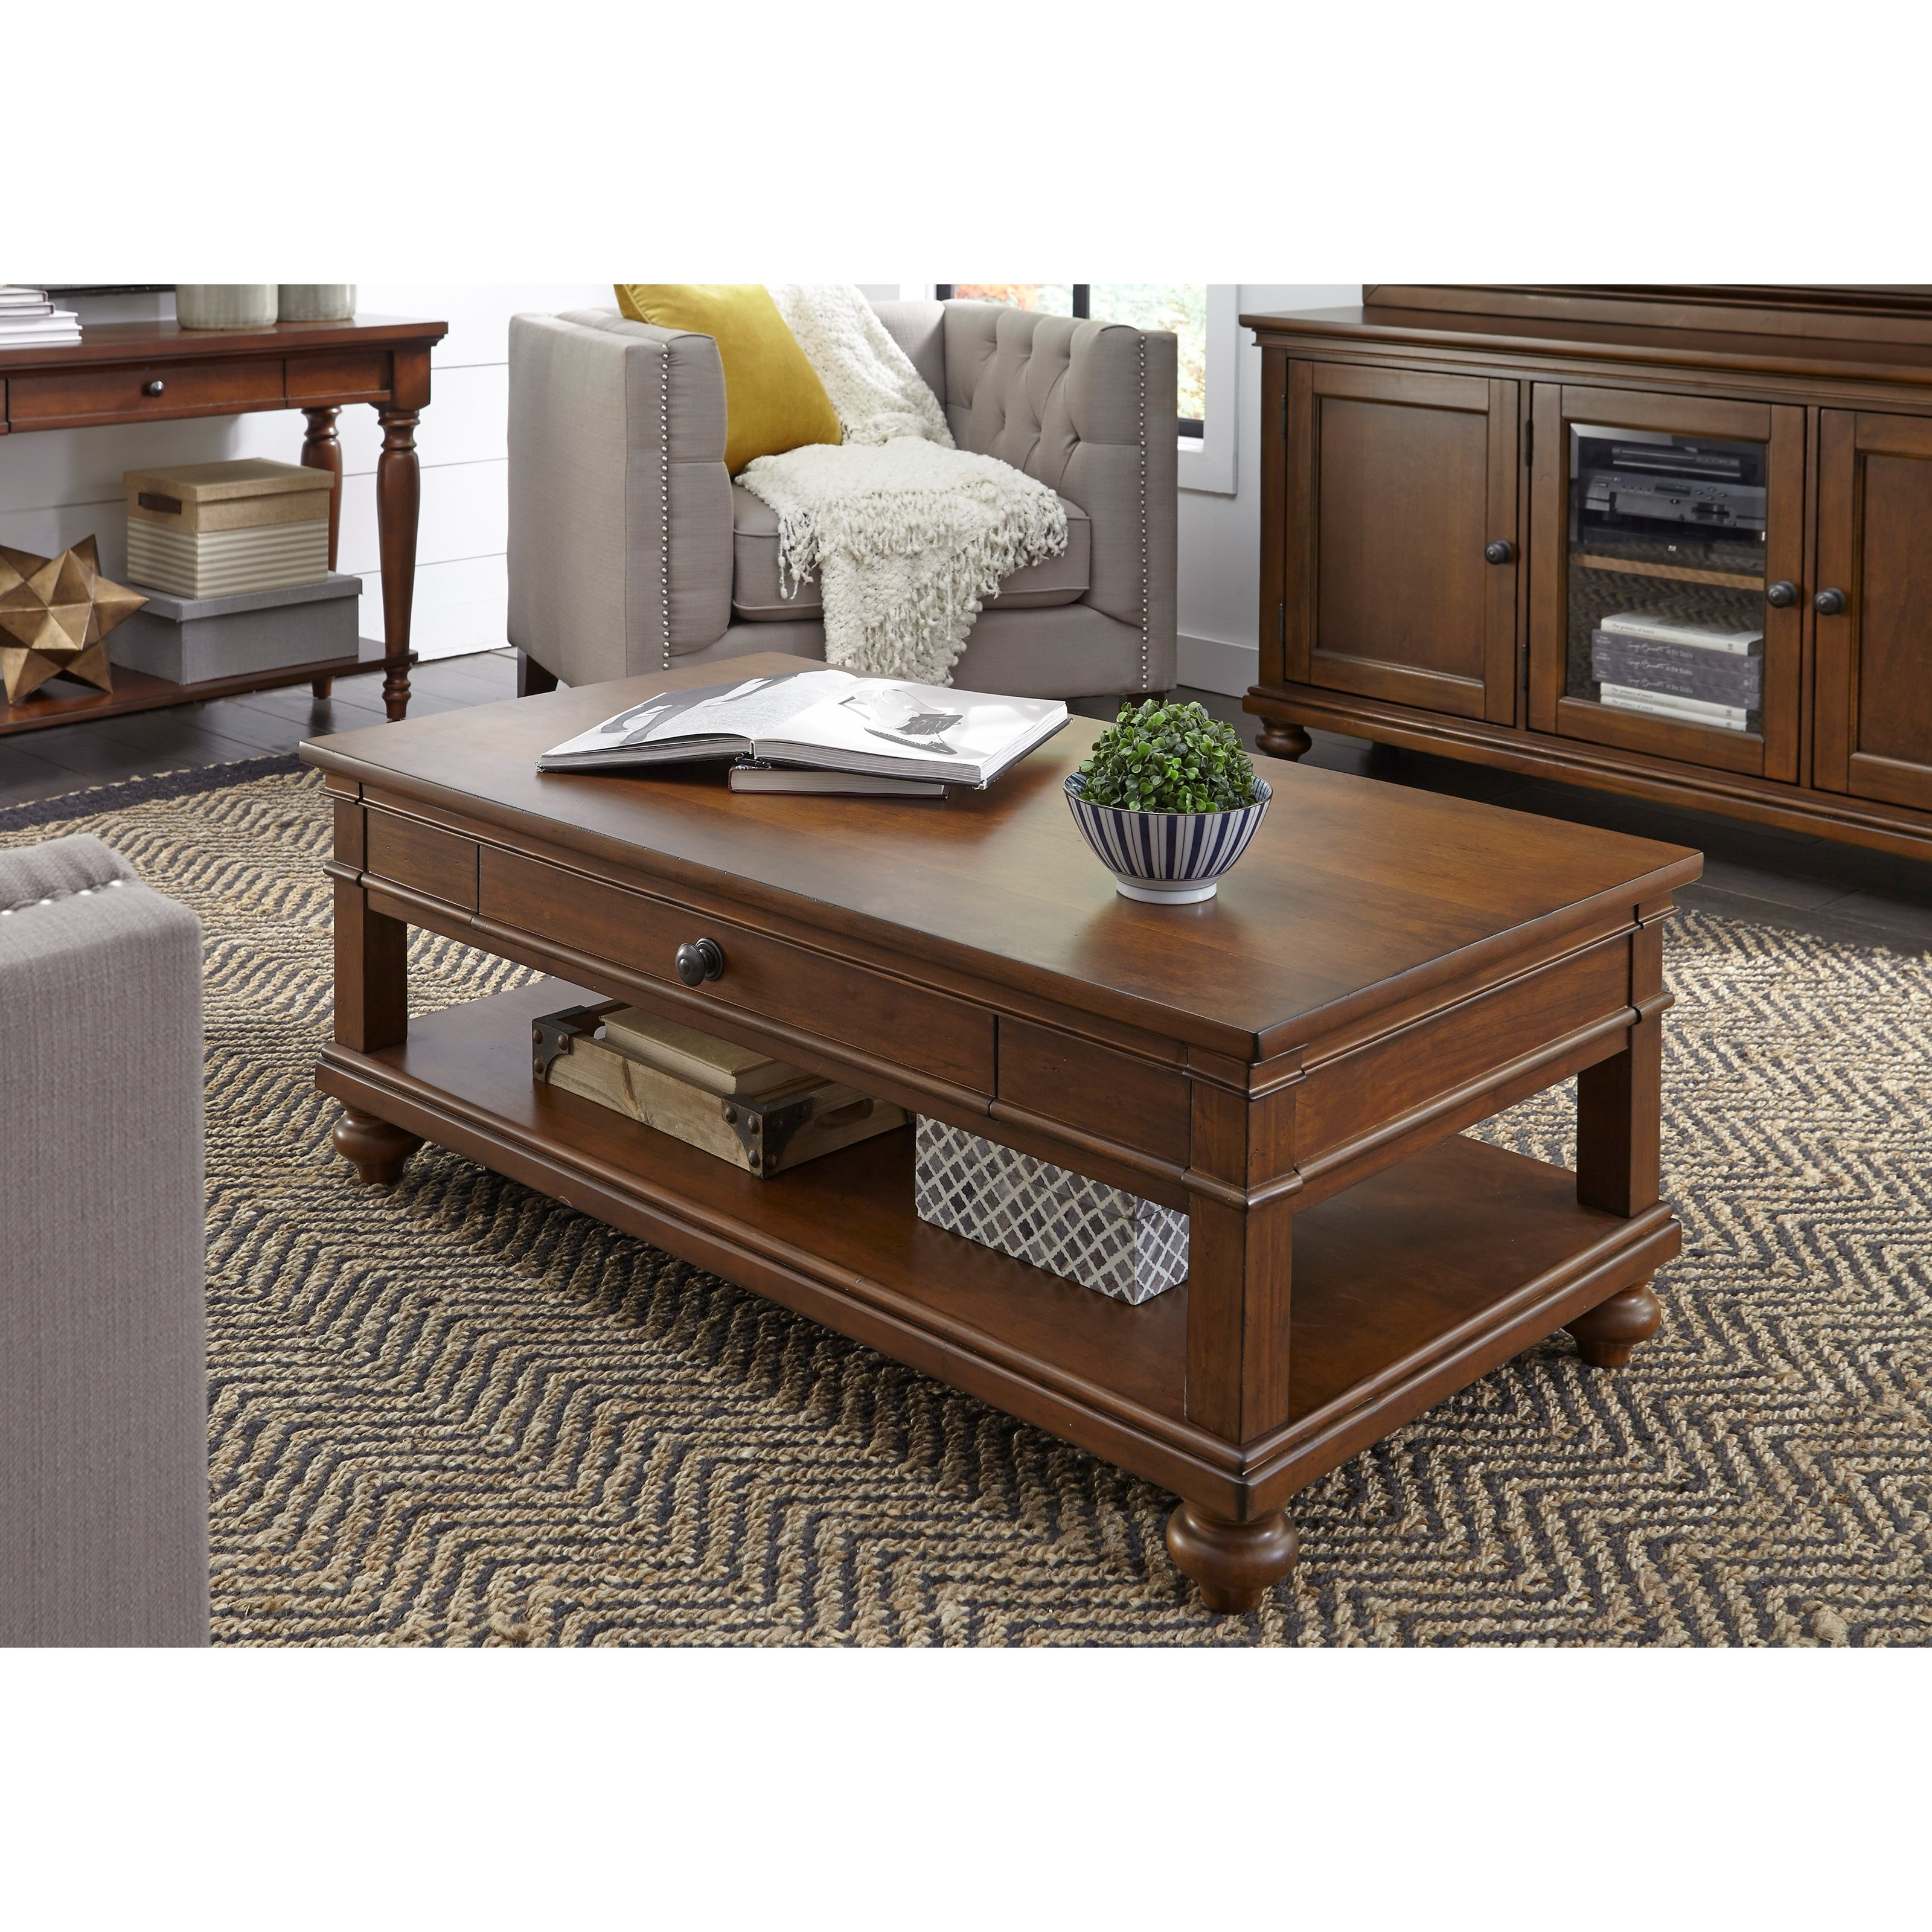 Oxford Cocktail Table with Casters by Aspenhome at Stoney Creek Furniture